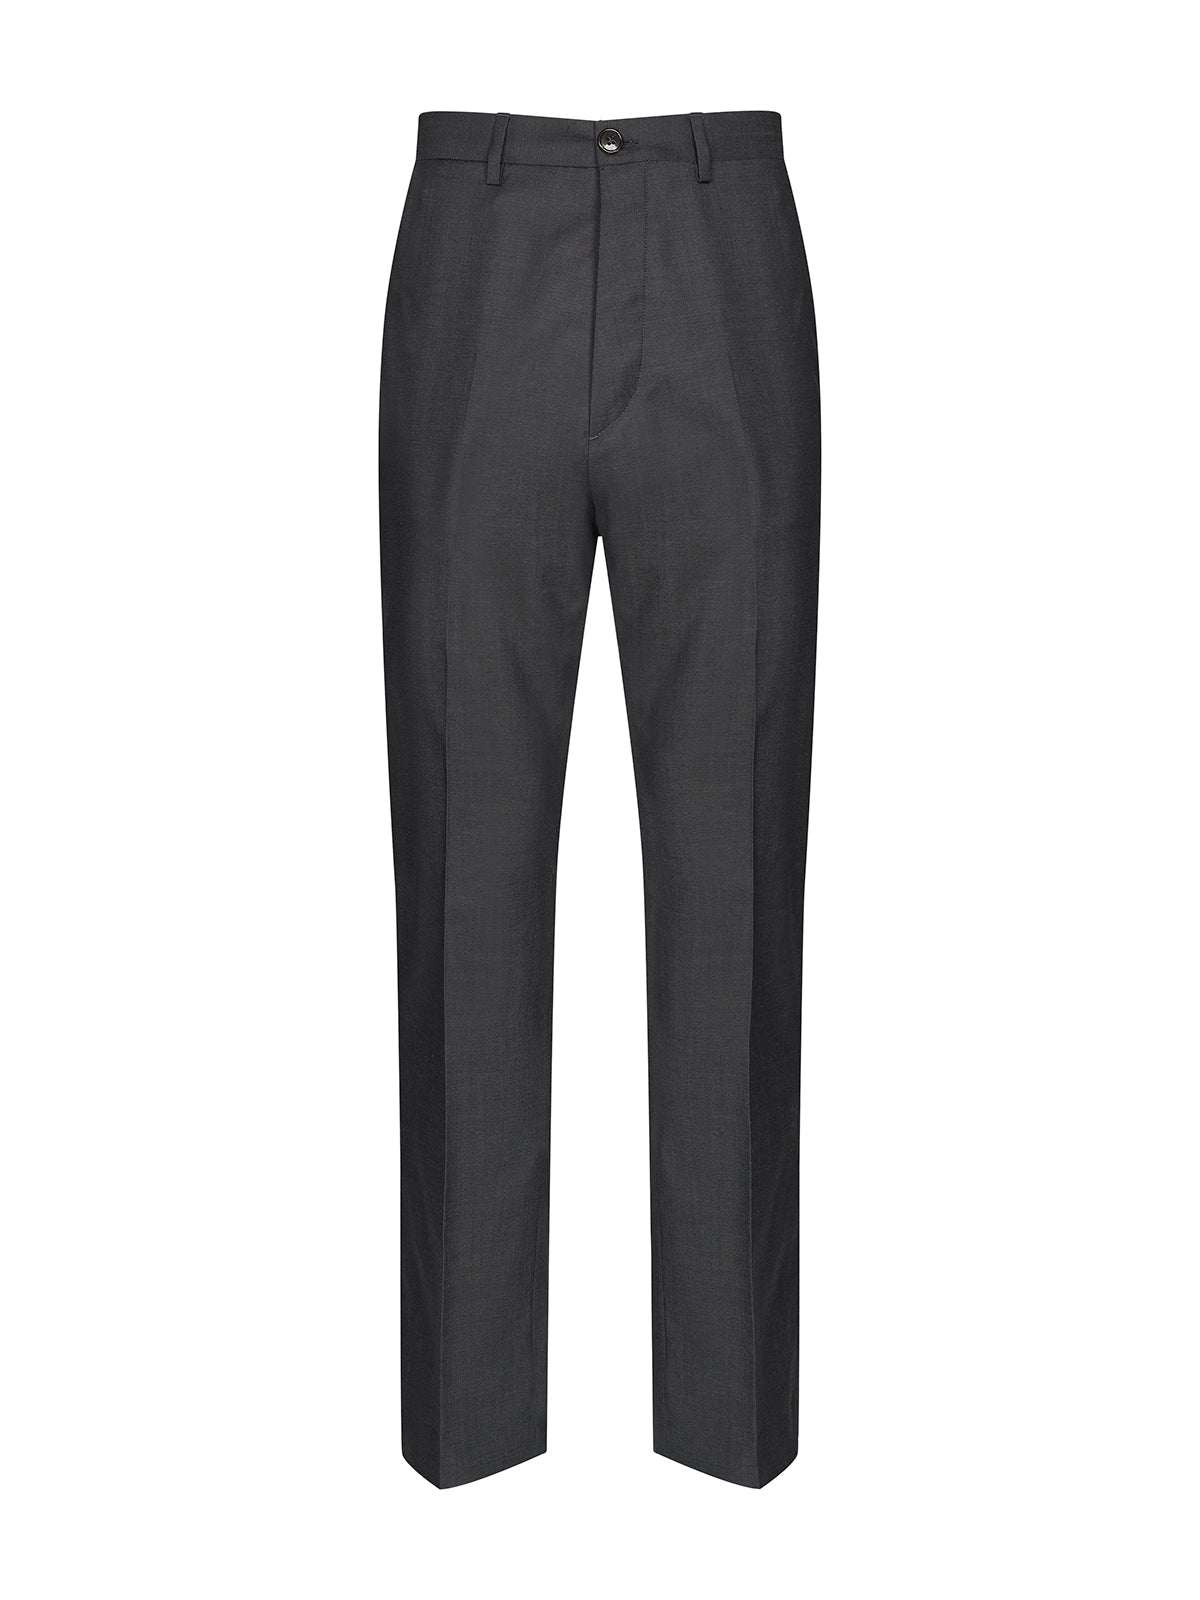 PRINCE TROUSERS GREY